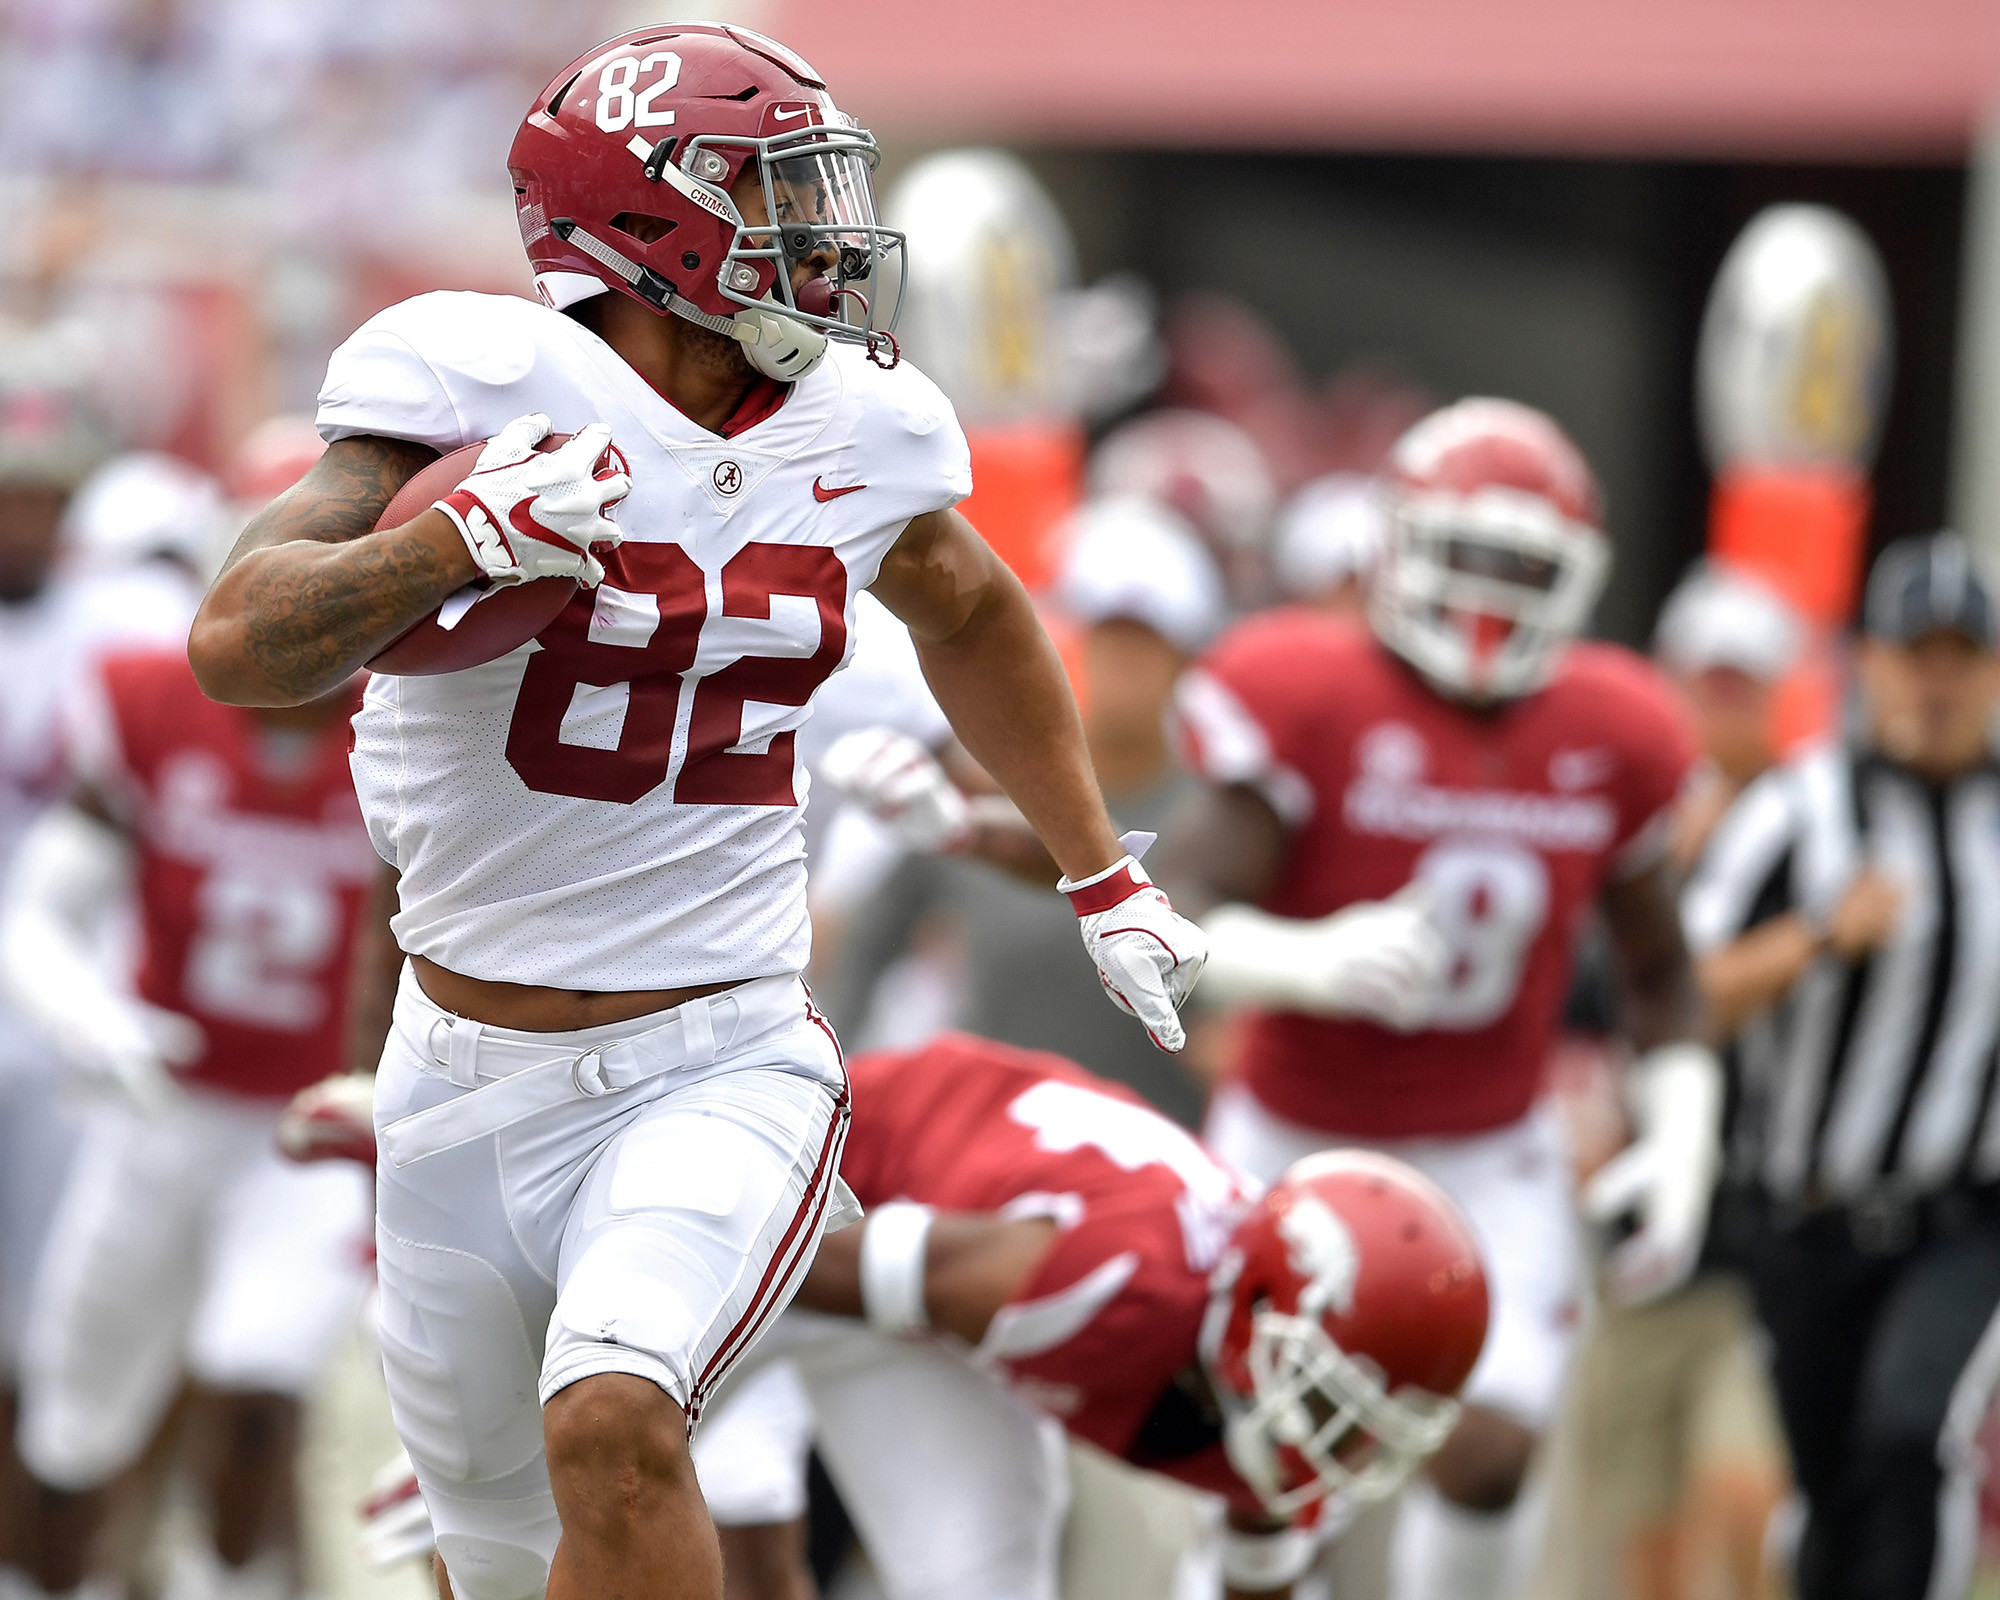 Alabama Crimson Tide tight end Irv Smith Jr. (82) on his way to a touchdown against the Arkansas Razorbacks on the first play of the game from scrimmage on Oct. 6, 2018, in Fayetteville, Ark. Alabama defeated Arkansas 65-31. (Photo by Lee Walls)